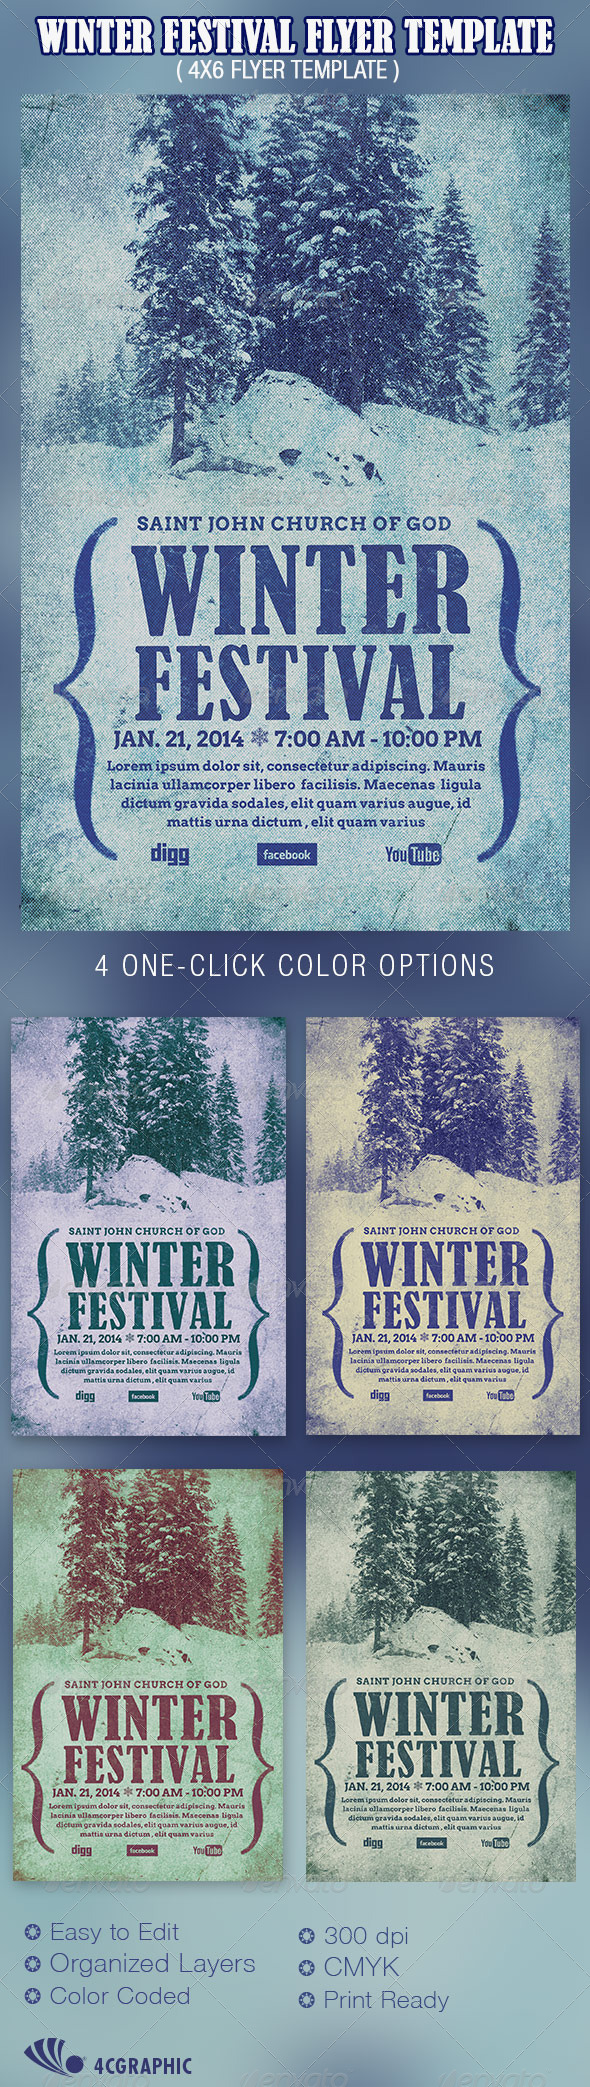 Winter Festival Flyer Template - Events Flyers